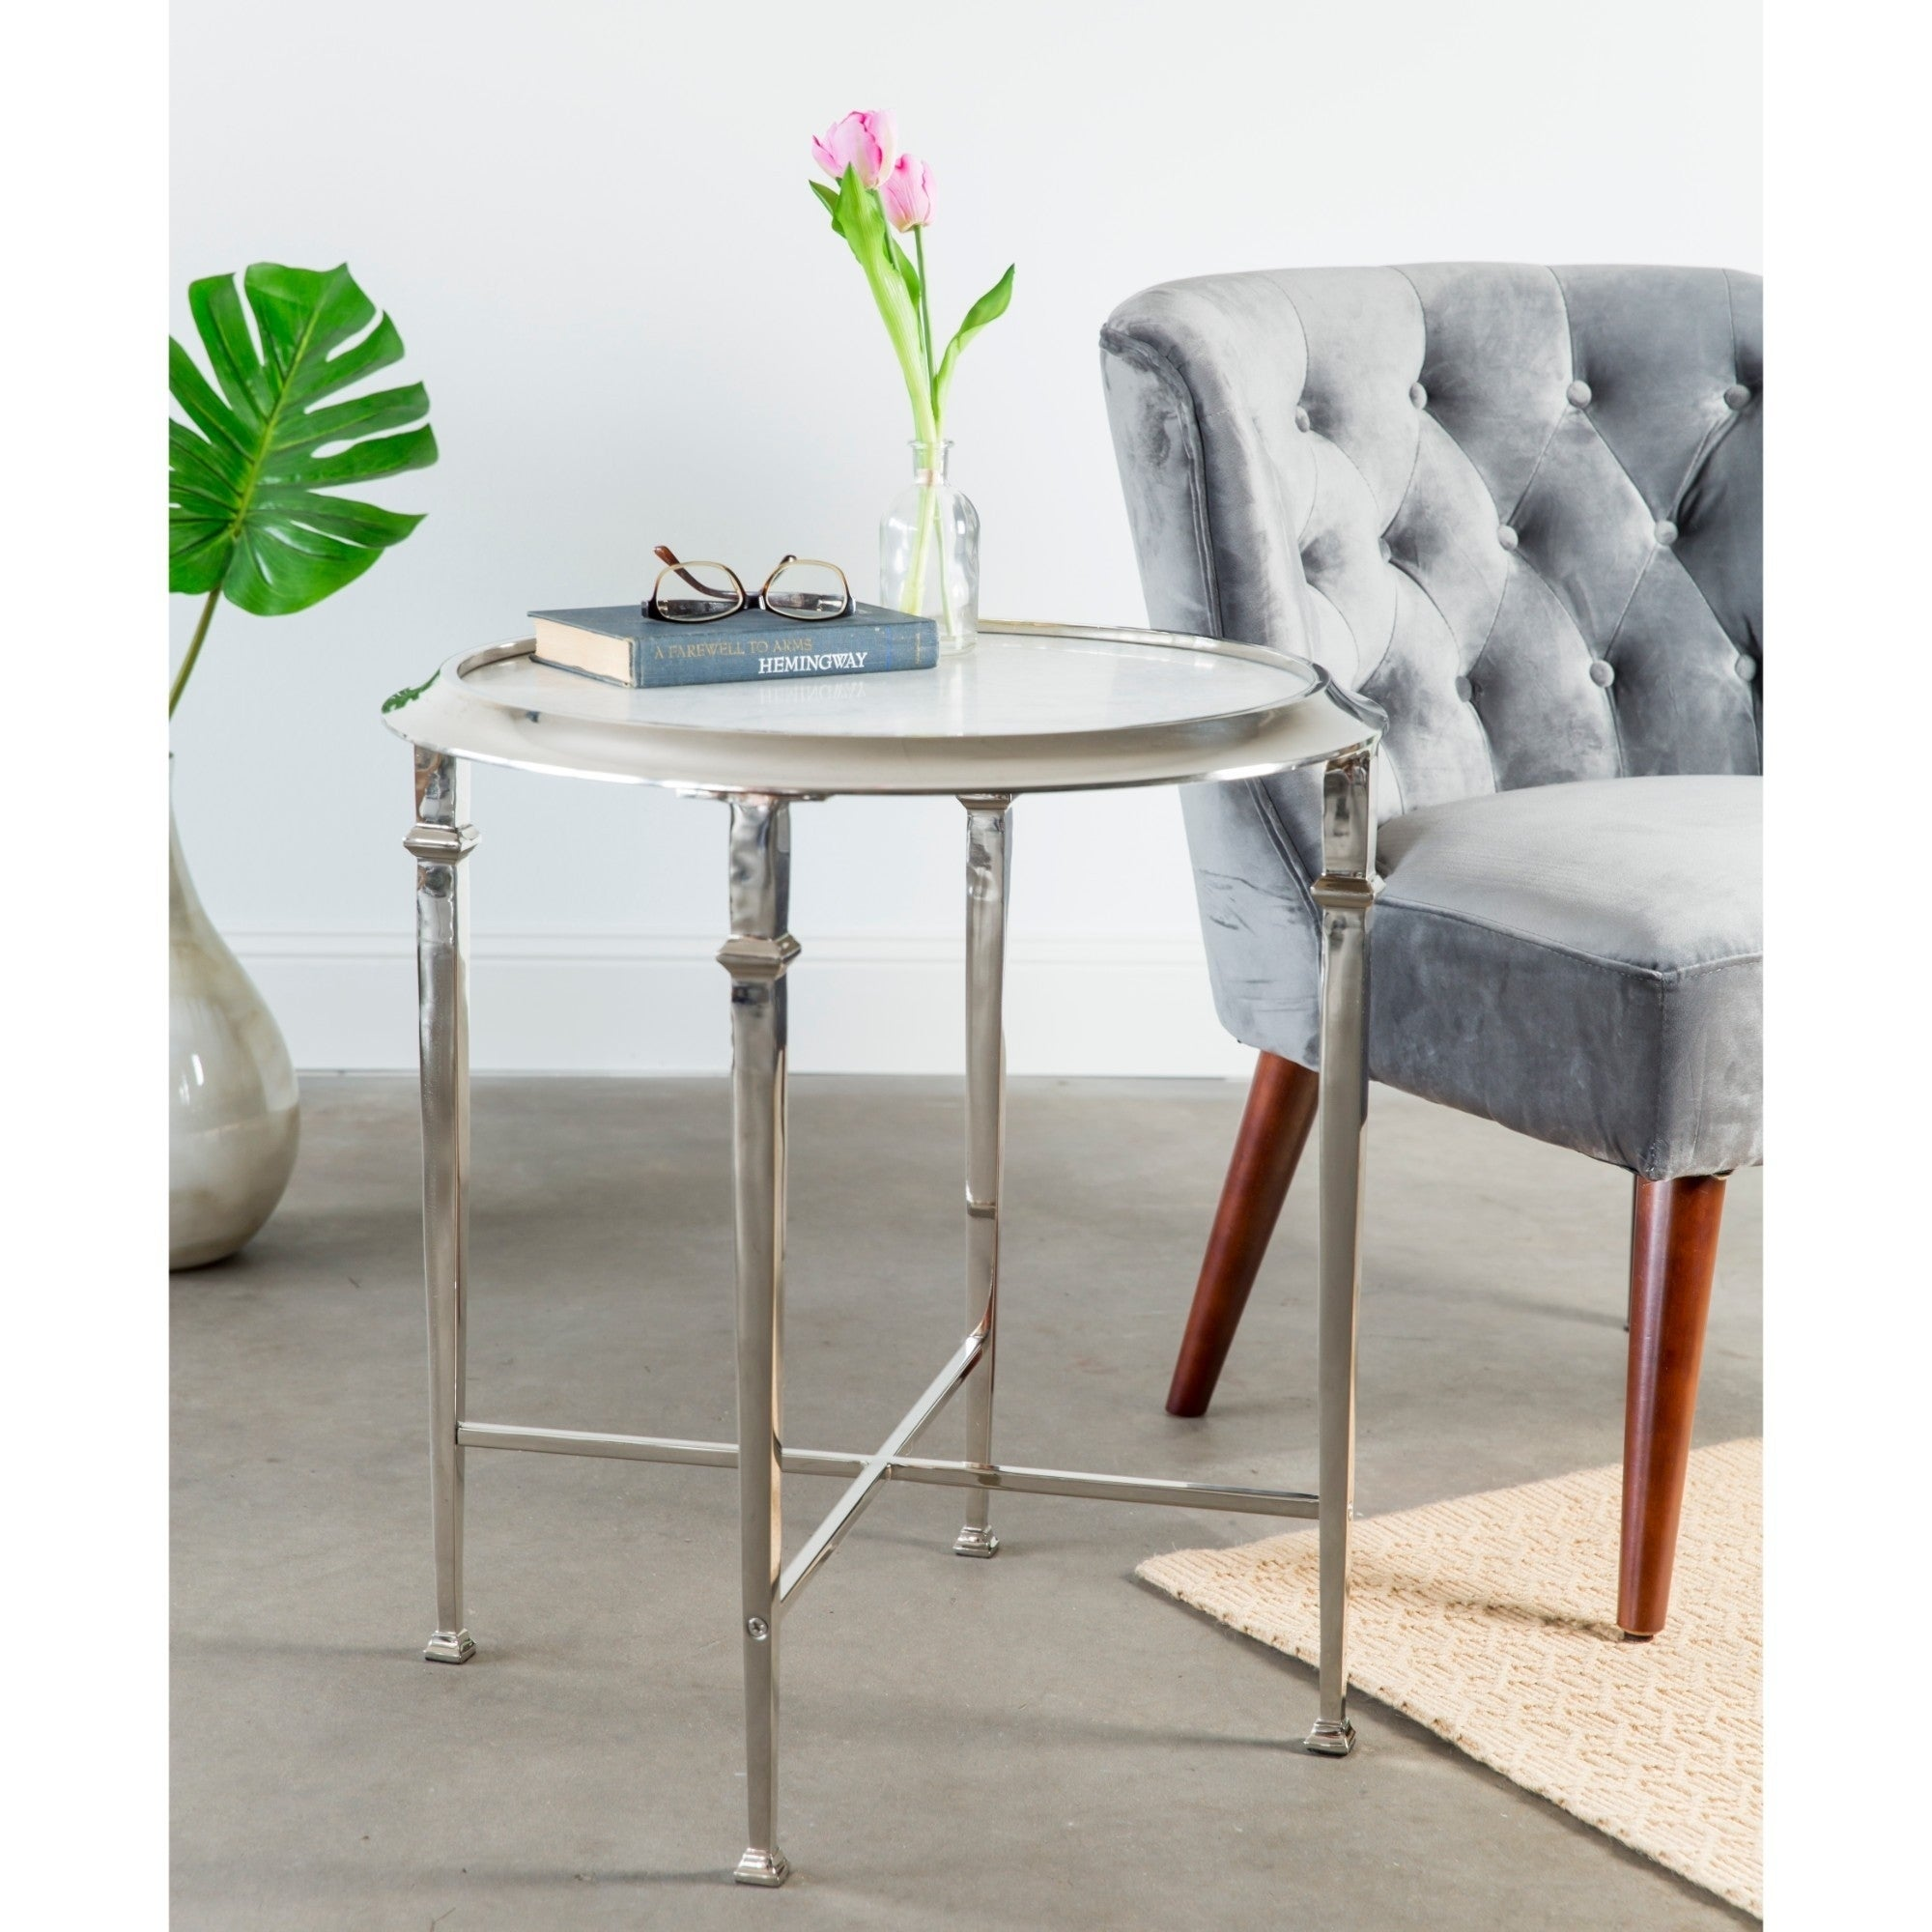 Knox & Harrison Handmade Chic Metal End Table with Granit...